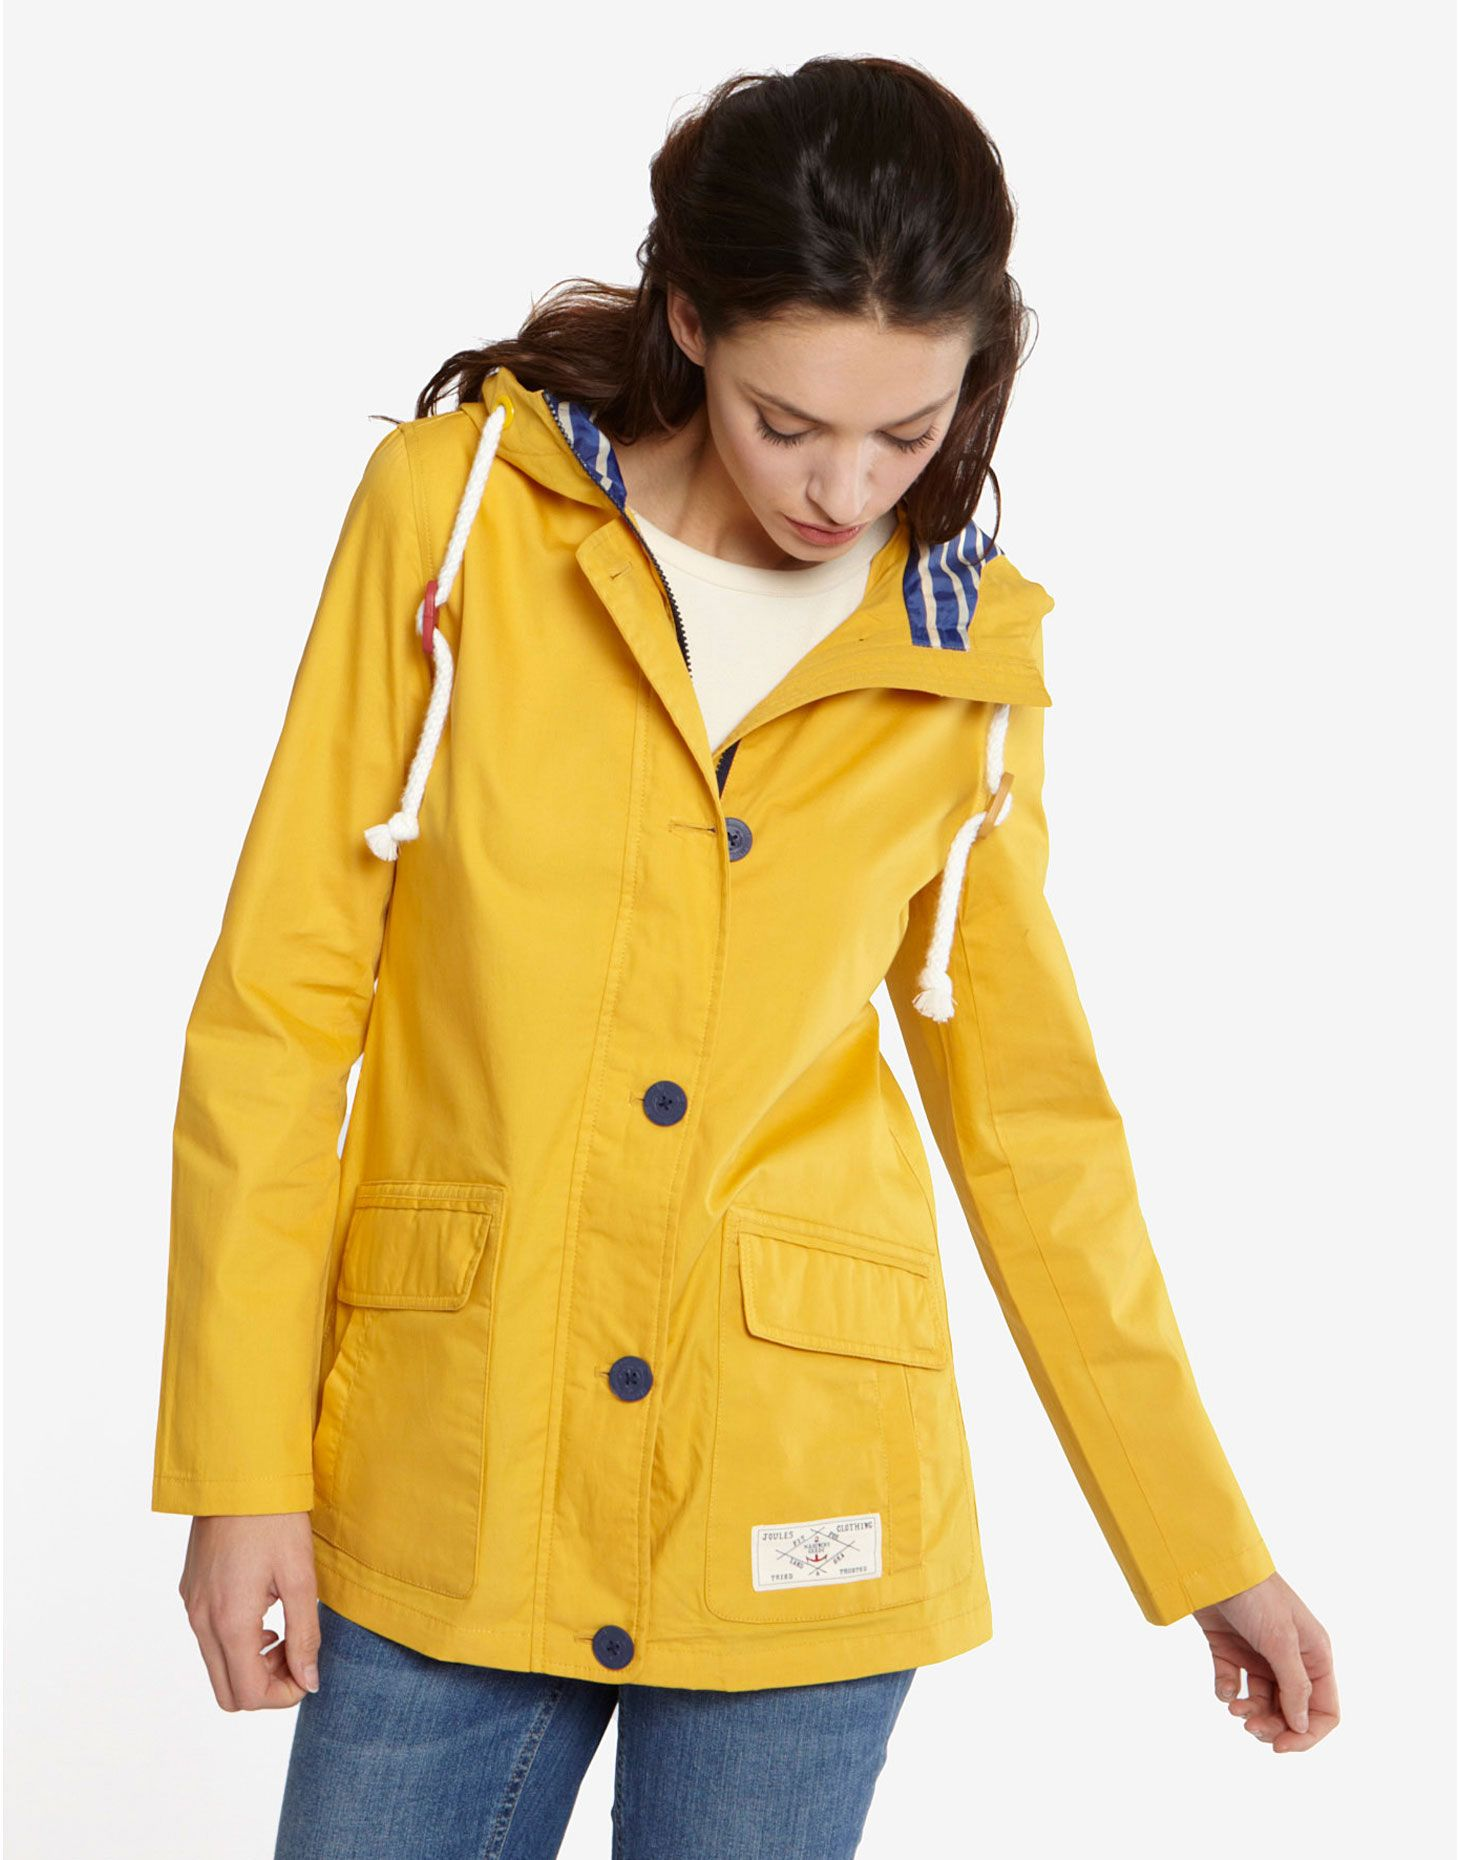 17 Best images about Rain coats/ Parkas on Pinterest | Yellow ...